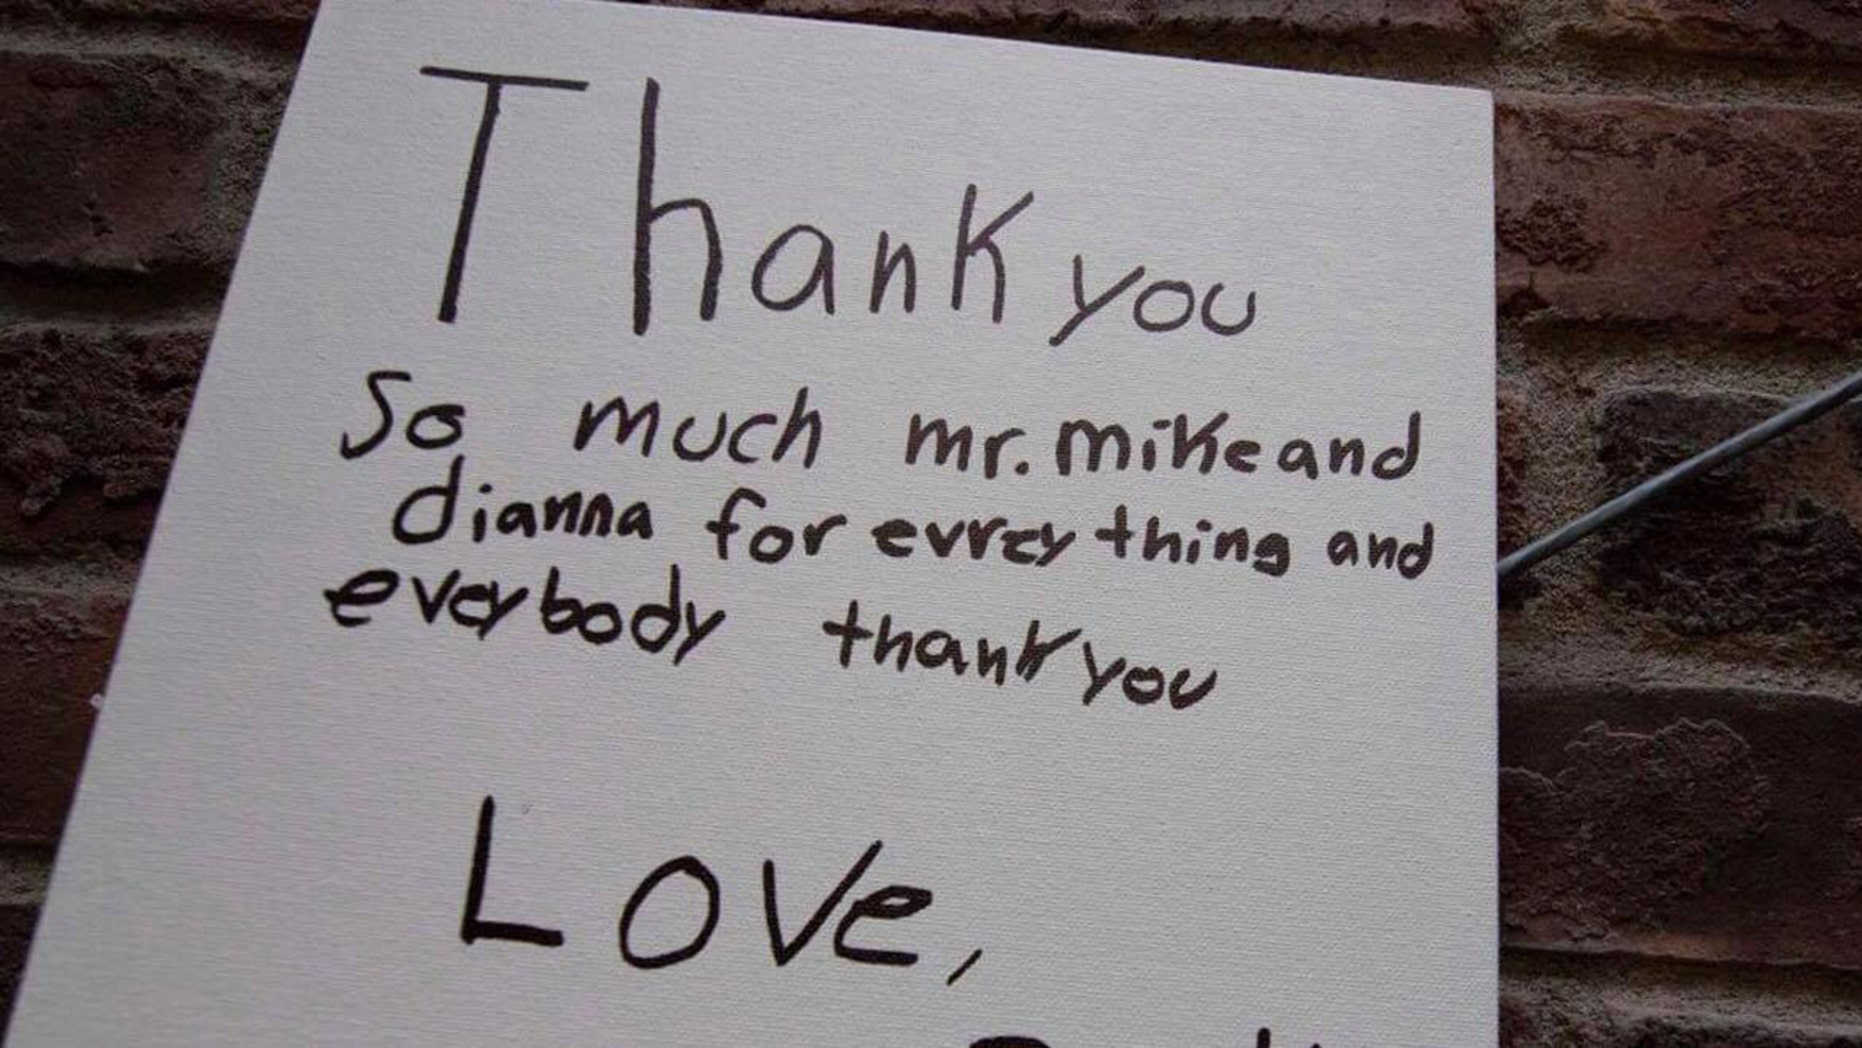 The 12-year-old boy shared a sweet note after celebrating his first-ever birthday party.